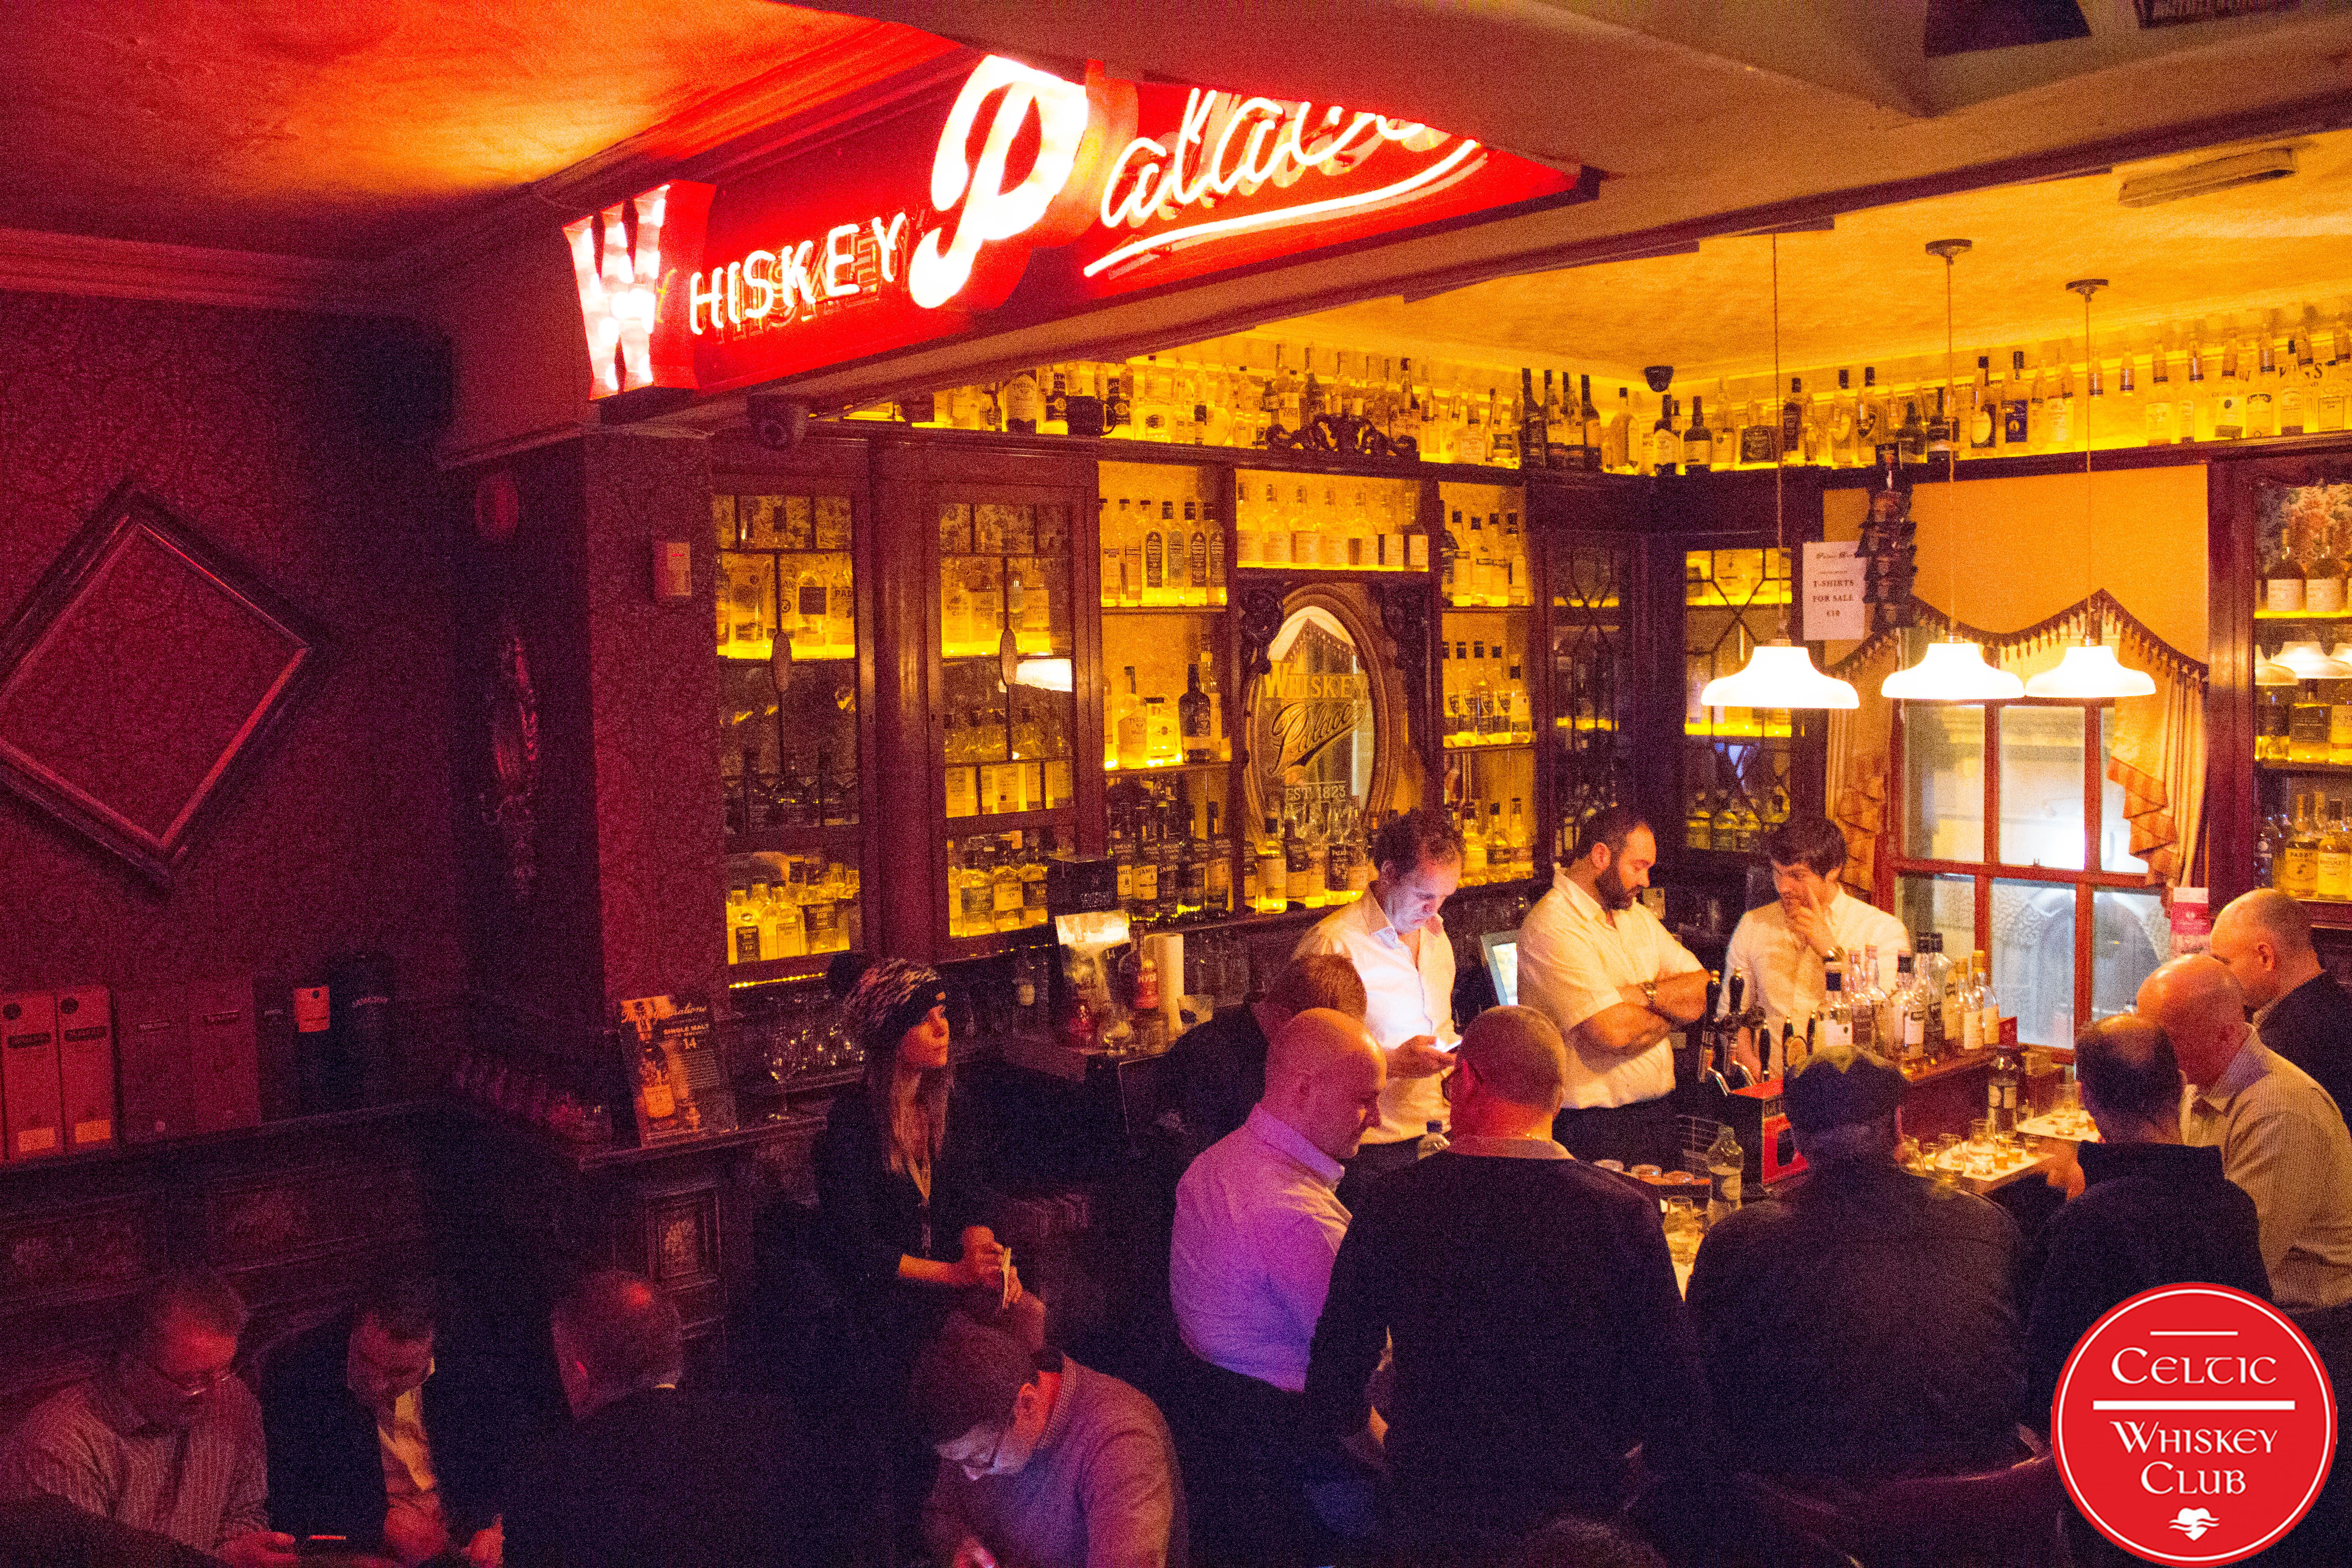 Palace_Bar_Celtic_Whiskey_Shop_Irish_Whiskey_Tasting